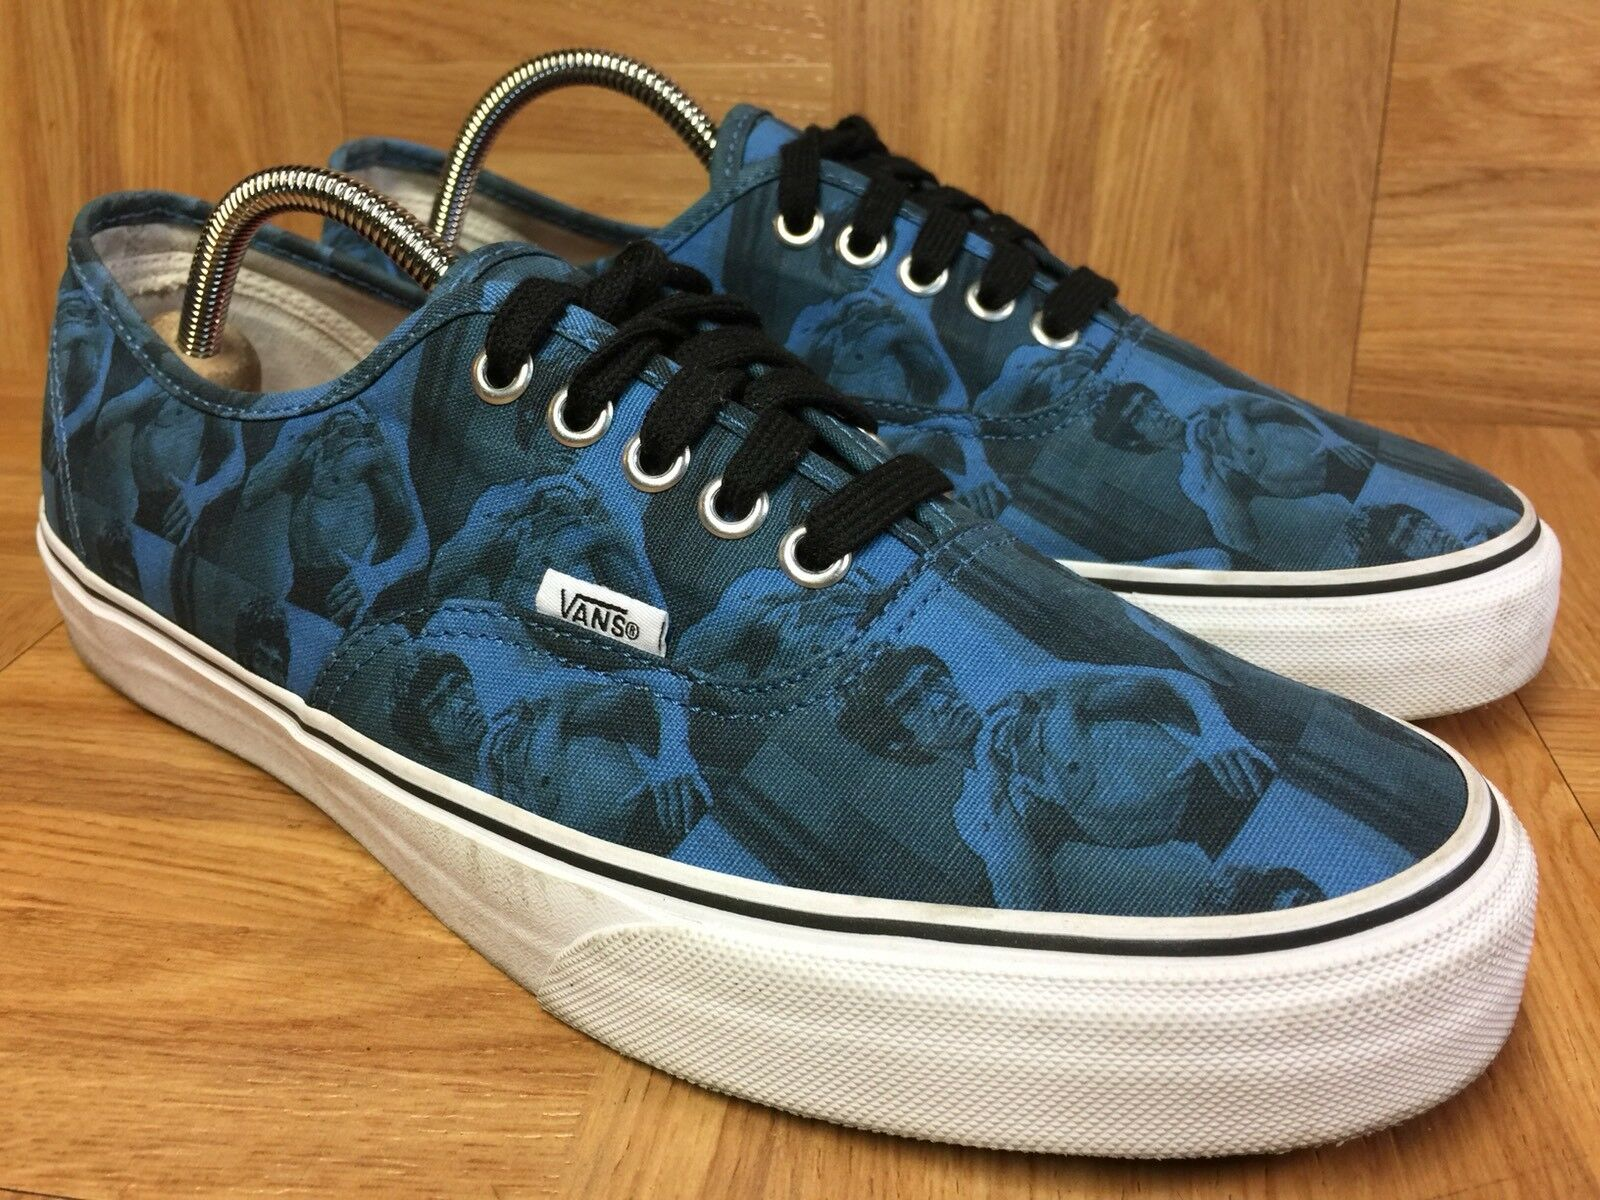 RARE VANS x Supreme BRUCE LEE Authentic Sneakers Sz 9 Men's Vintage shoes LE